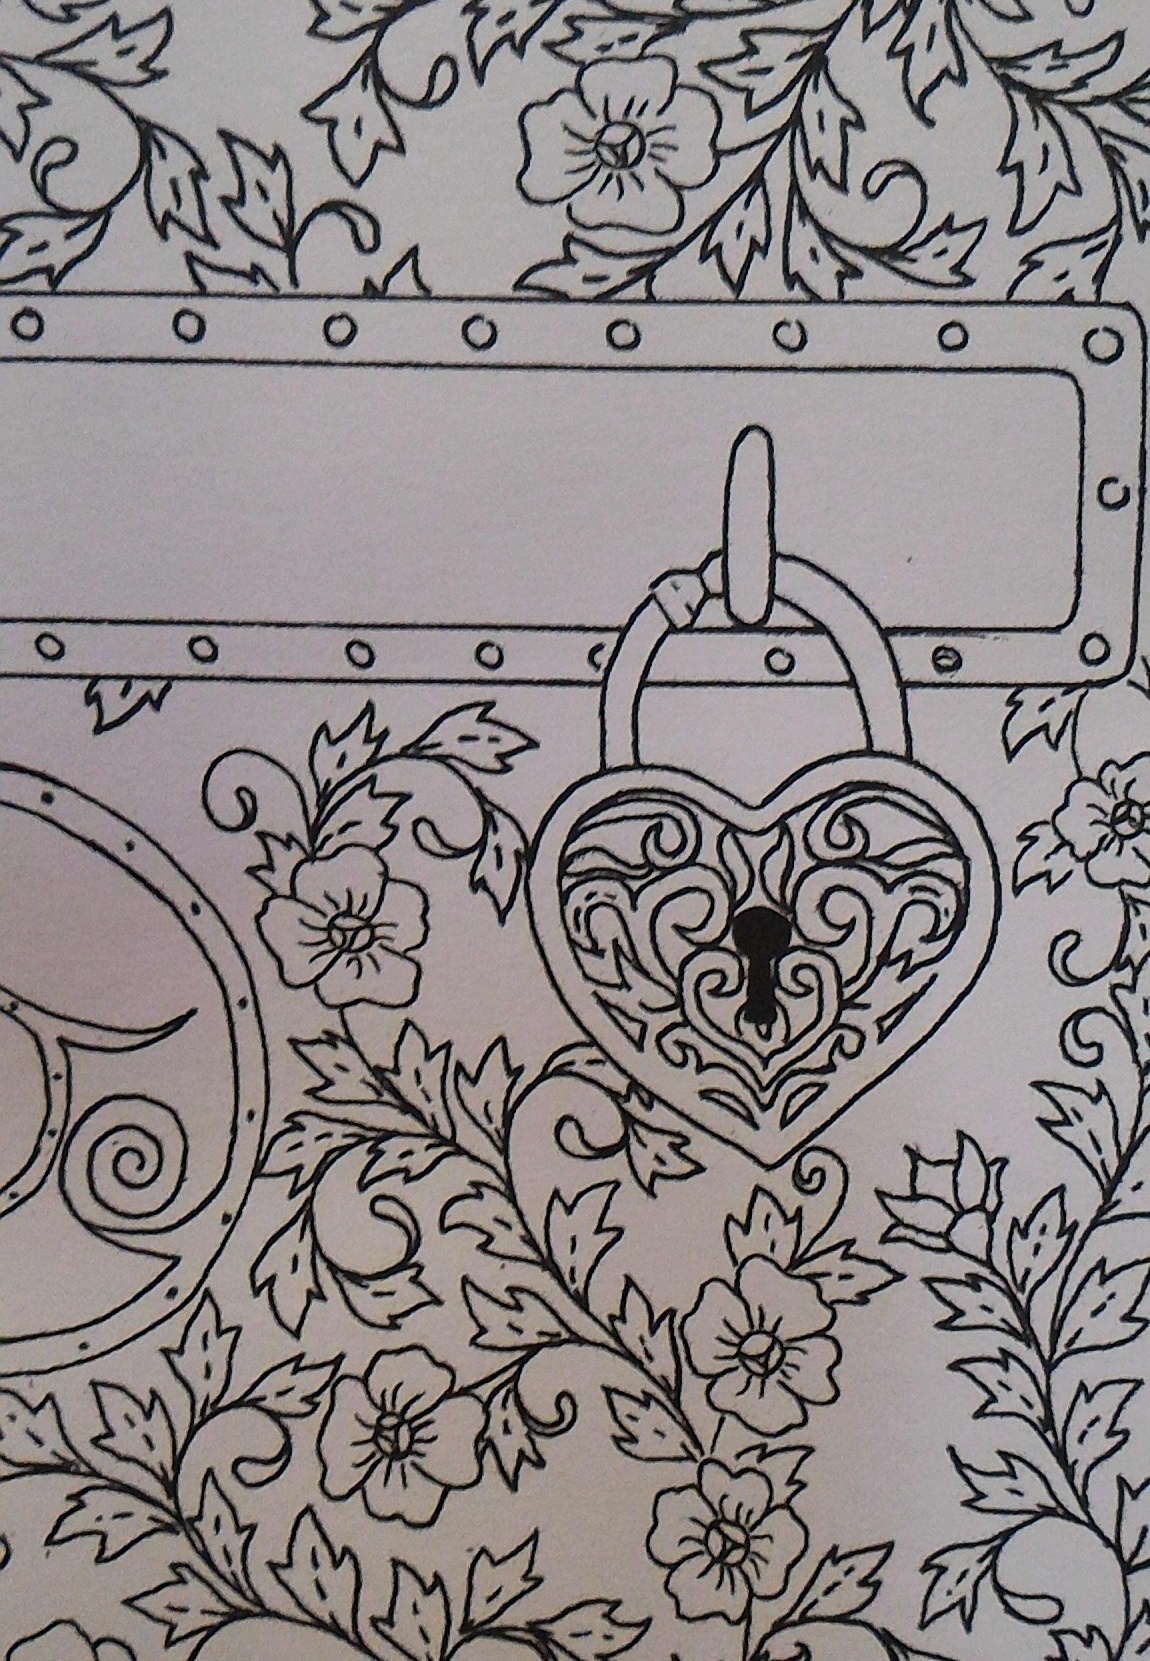 Printable Coloring Card Key to